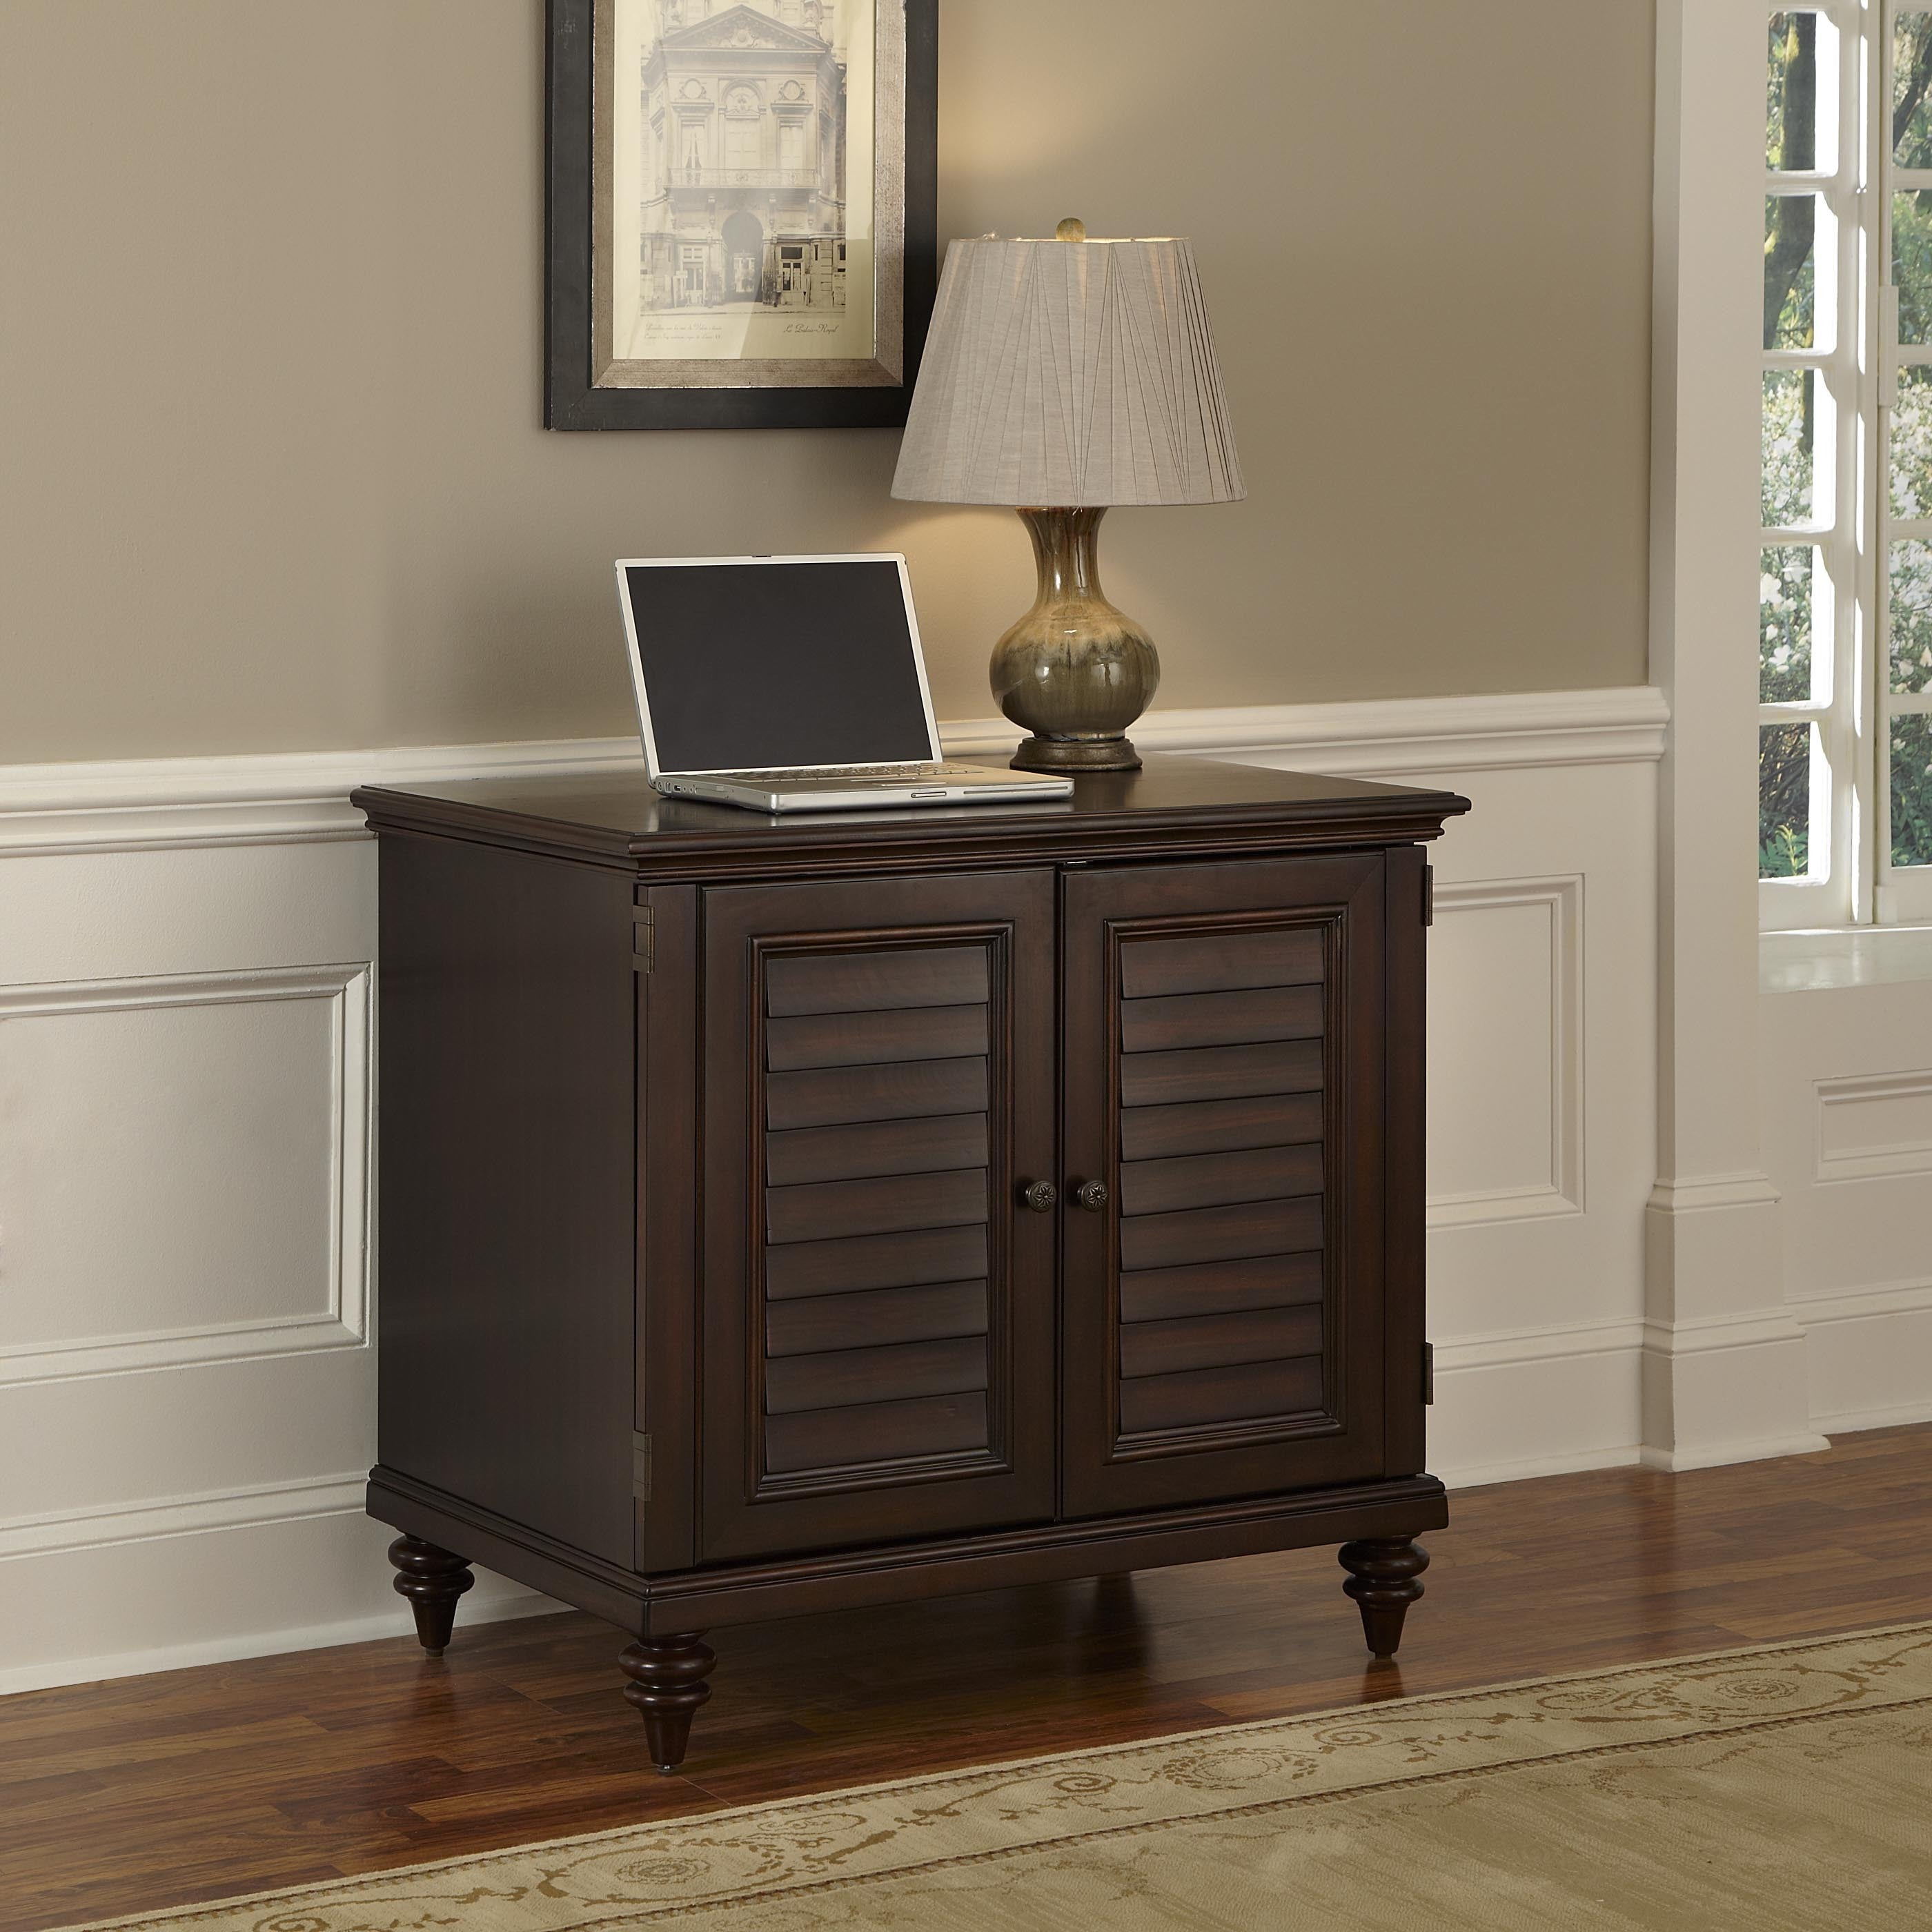 Beau Bermuda Compact Computer Cabinet By Home Styles